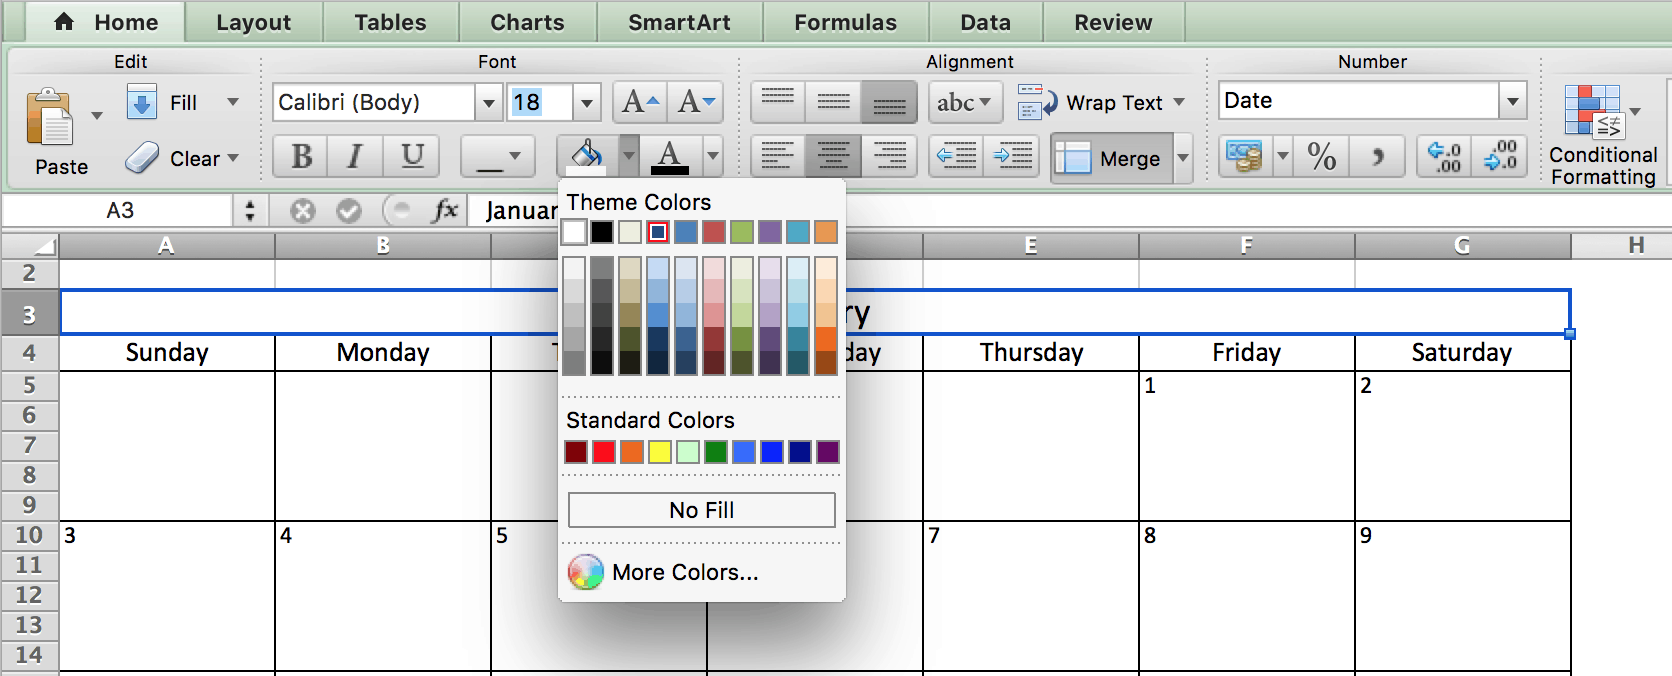 Ediblewildsus  Pleasing Make A  Calendar In Excel Includes Free Template With Outstanding Choosing Colors  Calendar In Excel With Comely Argument Excel Definition Also Excel Vba Operator In Addition Tutorial Excel  And Concentrate Excel As Well As Compound Interest Formula For Excel Additionally Excel Level From Smartsheetcom With Ediblewildsus  Outstanding Make A  Calendar In Excel Includes Free Template With Comely Choosing Colors  Calendar In Excel And Pleasing Argument Excel Definition Also Excel Vba Operator In Addition Tutorial Excel  From Smartsheetcom